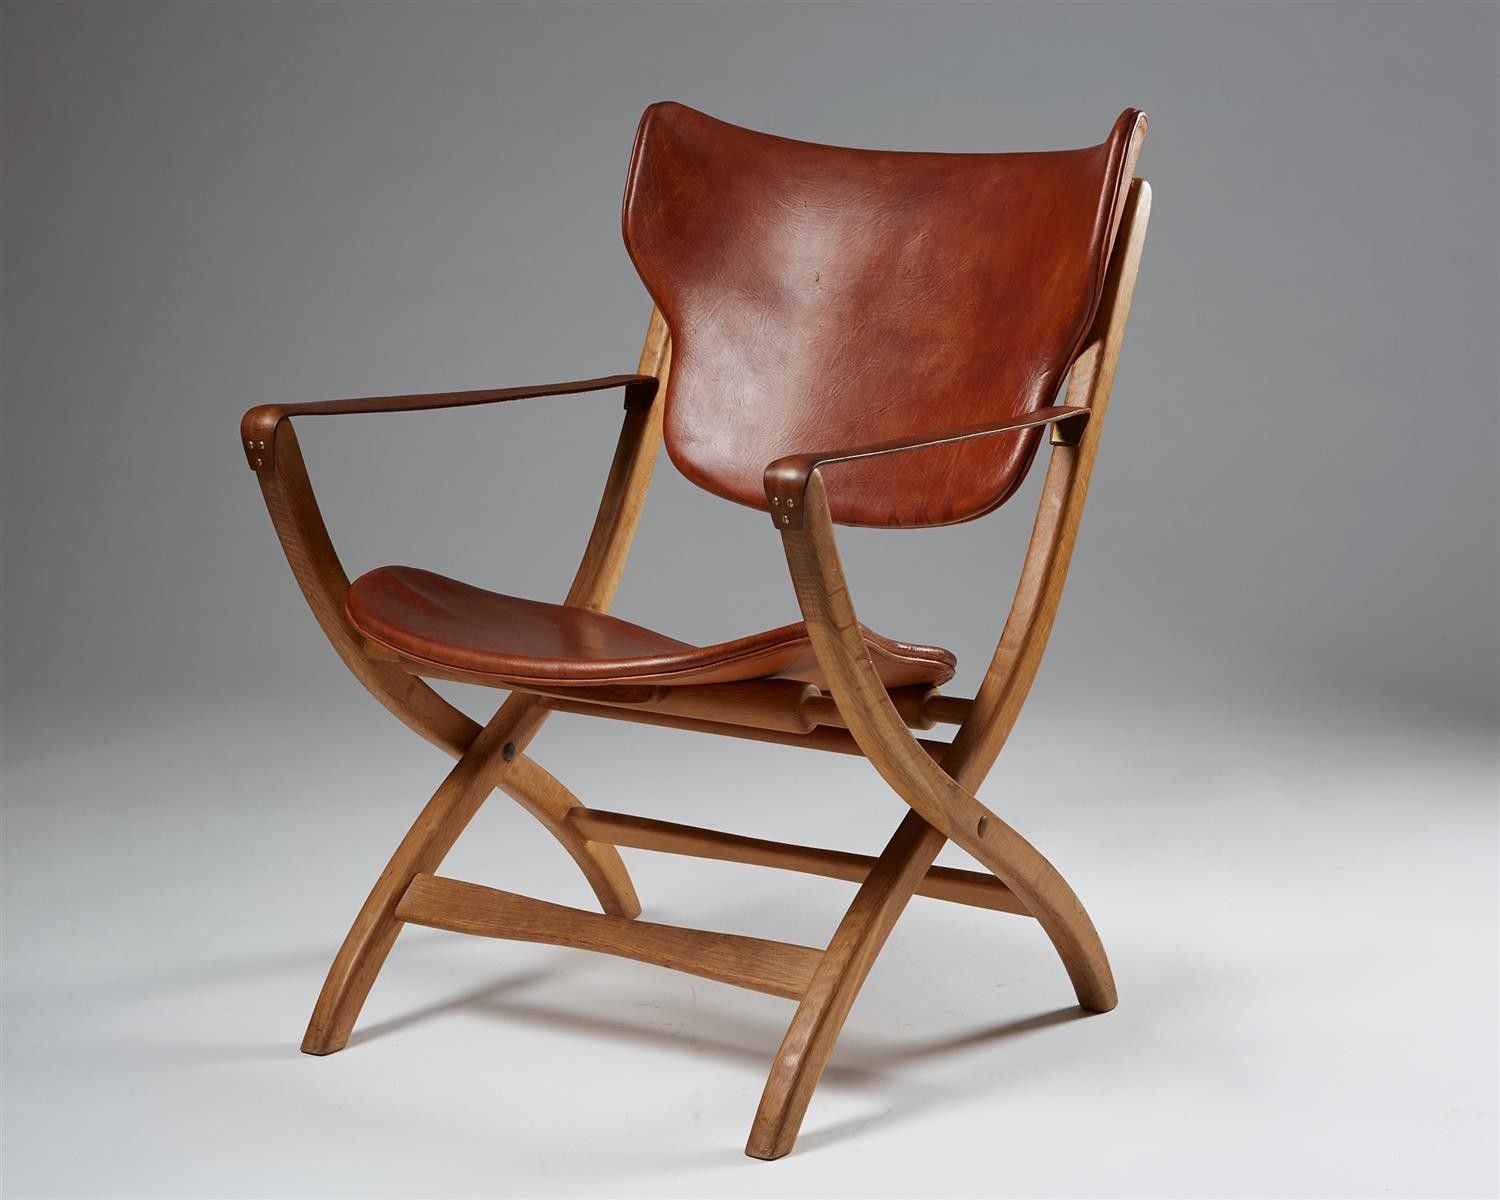 Authentic egyptian furniture - Folding Armchair Egyptian Chair Designed By Poul Hundevad Modernity